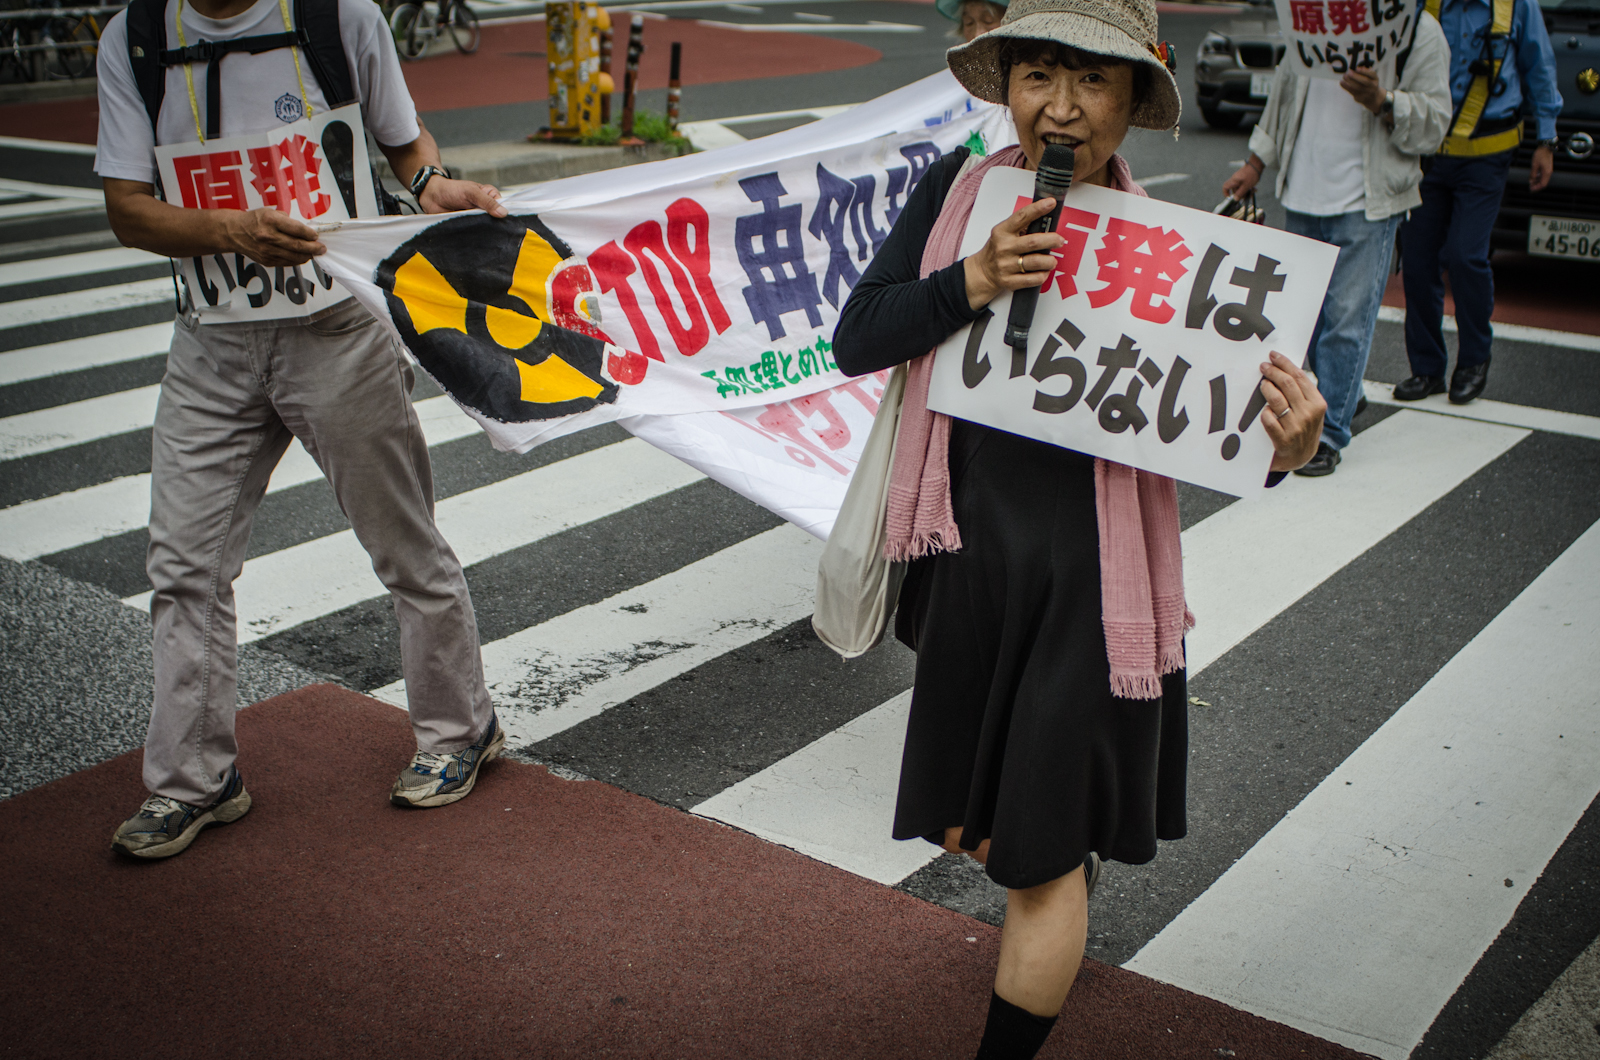 Press right for images of the anti-nuclear protest